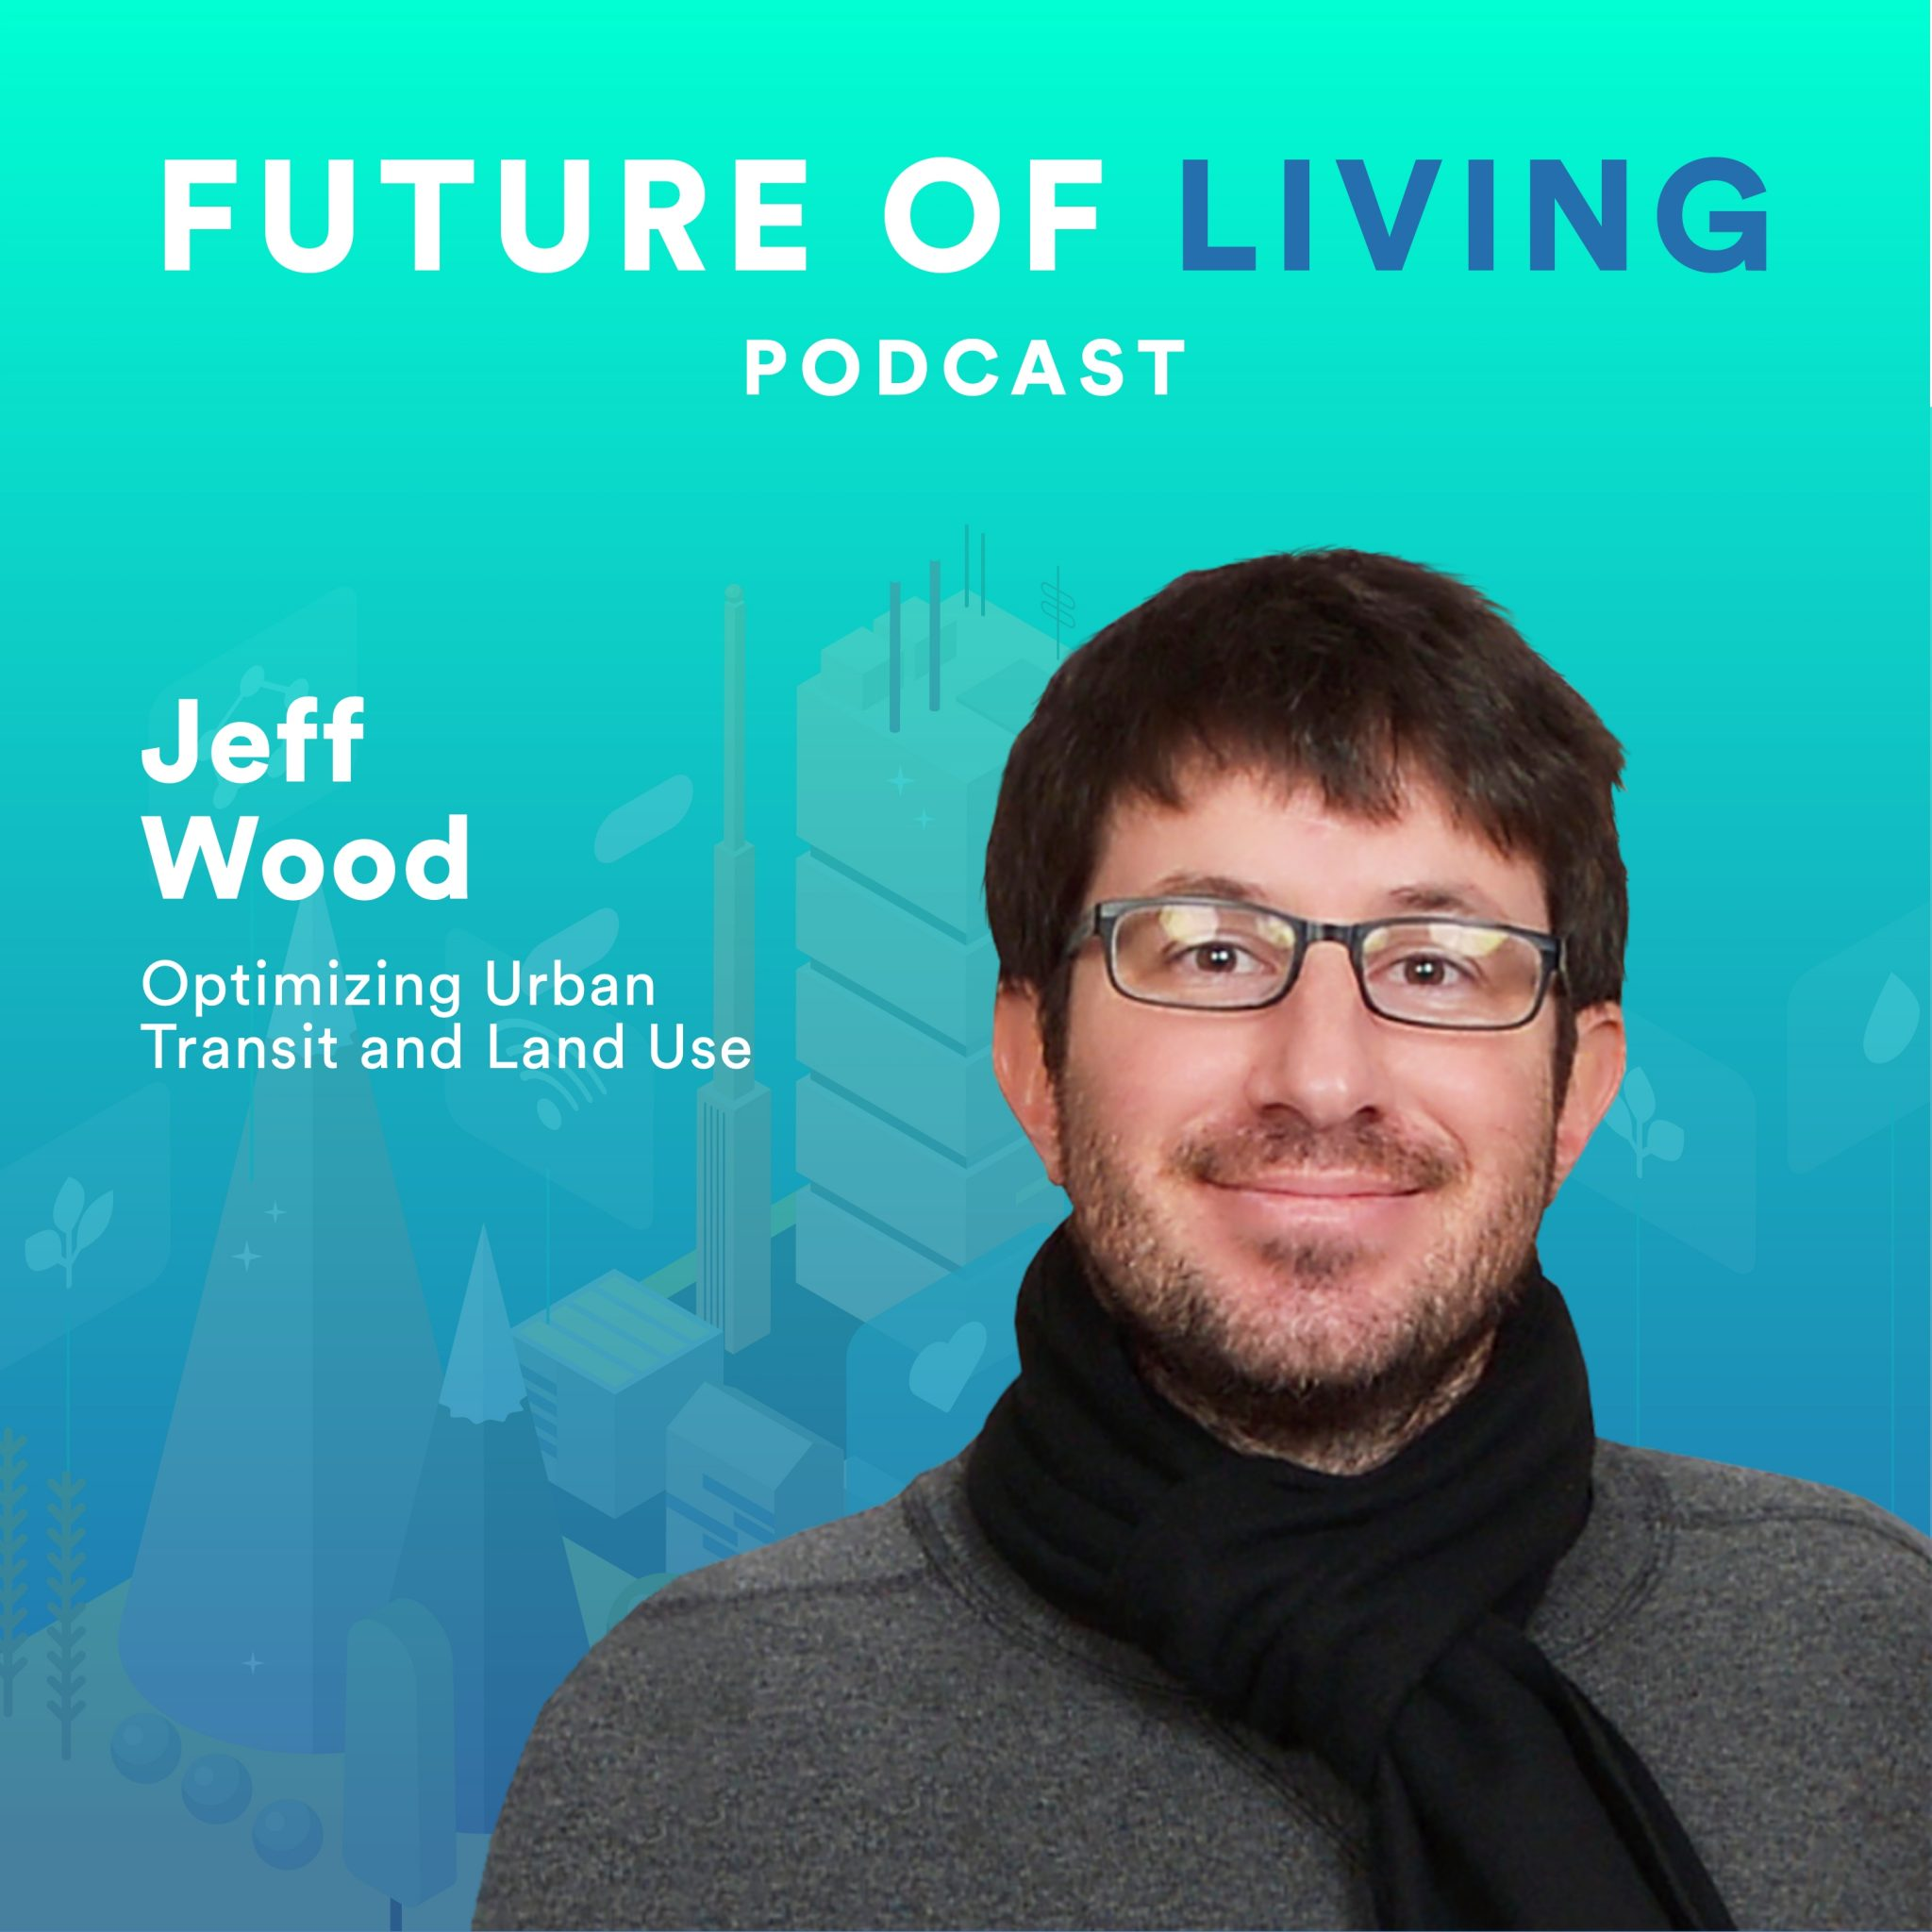 jeff-wood-urban-transit-land-use